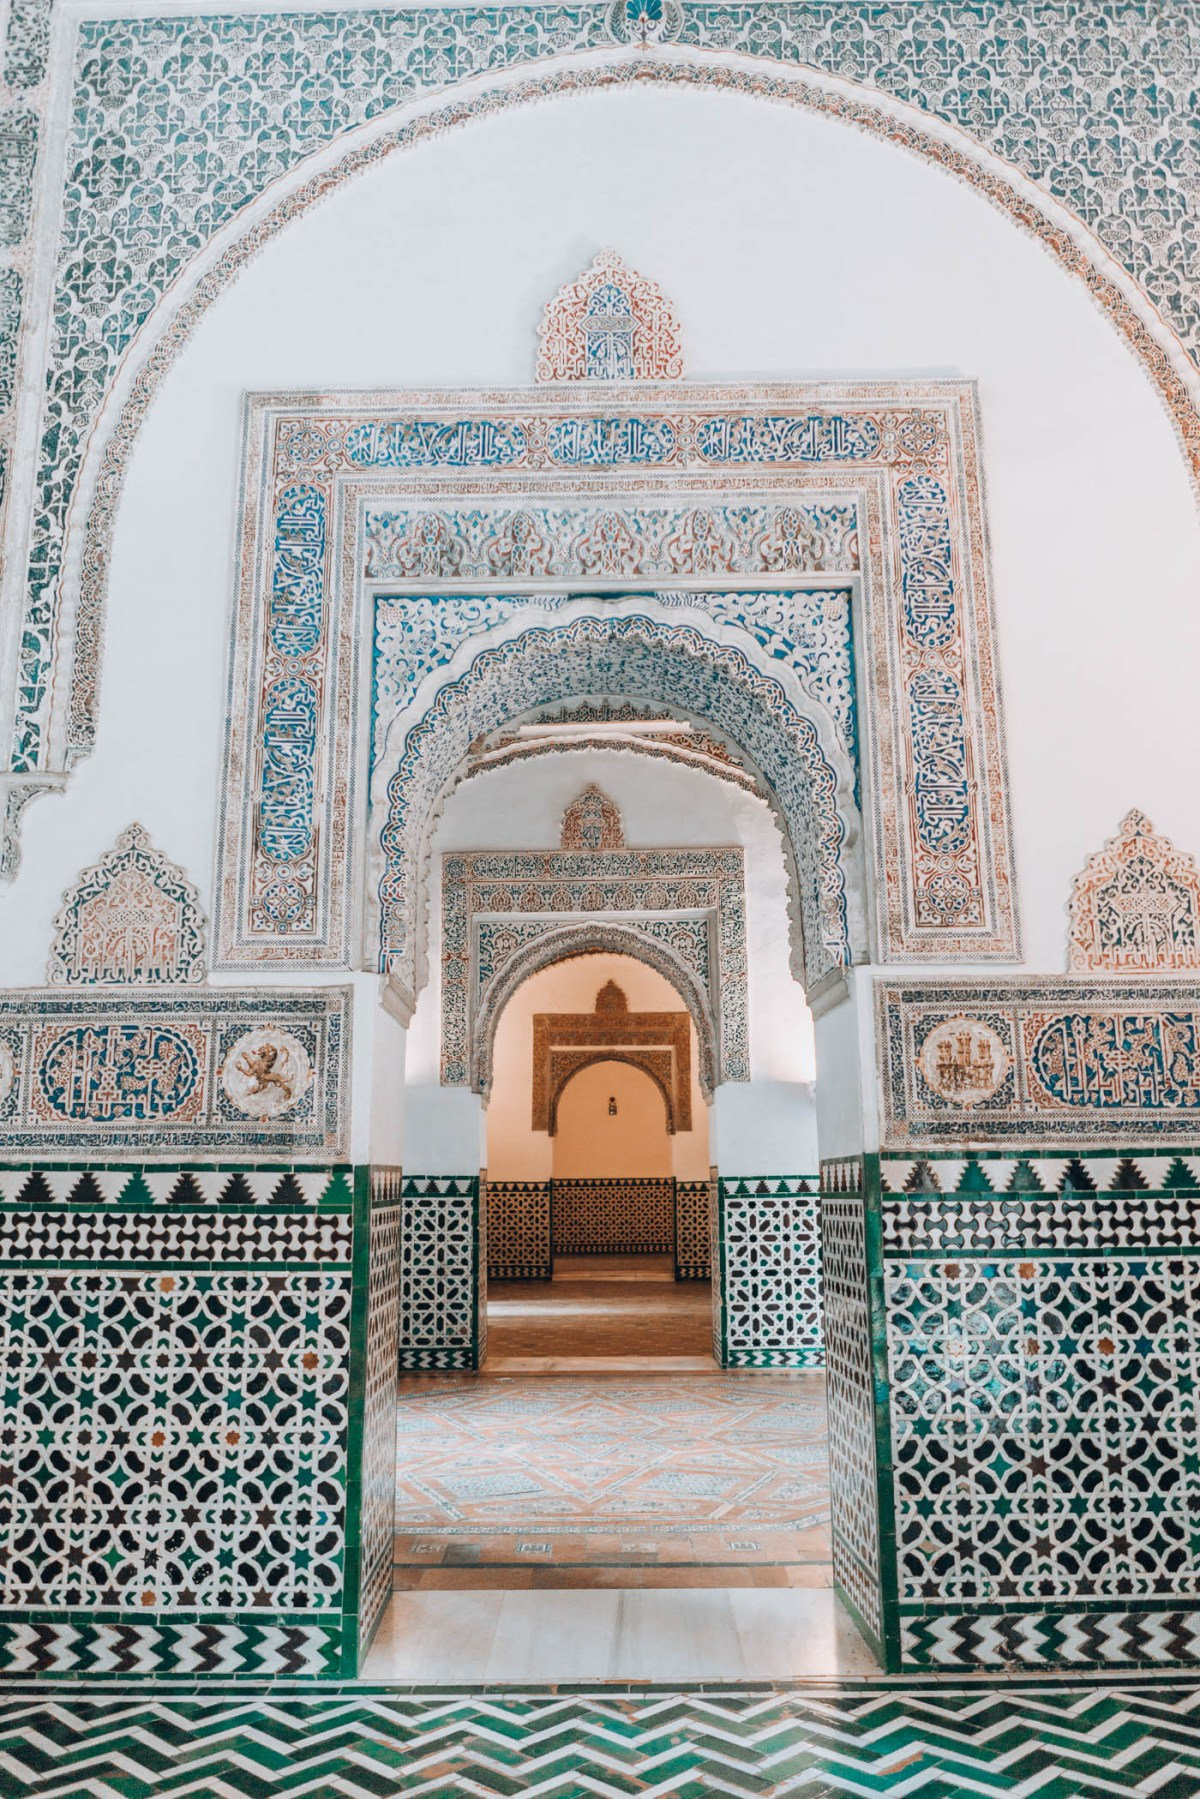 Alcazar, 48 Hours in Seville, Guide, History in High Heels